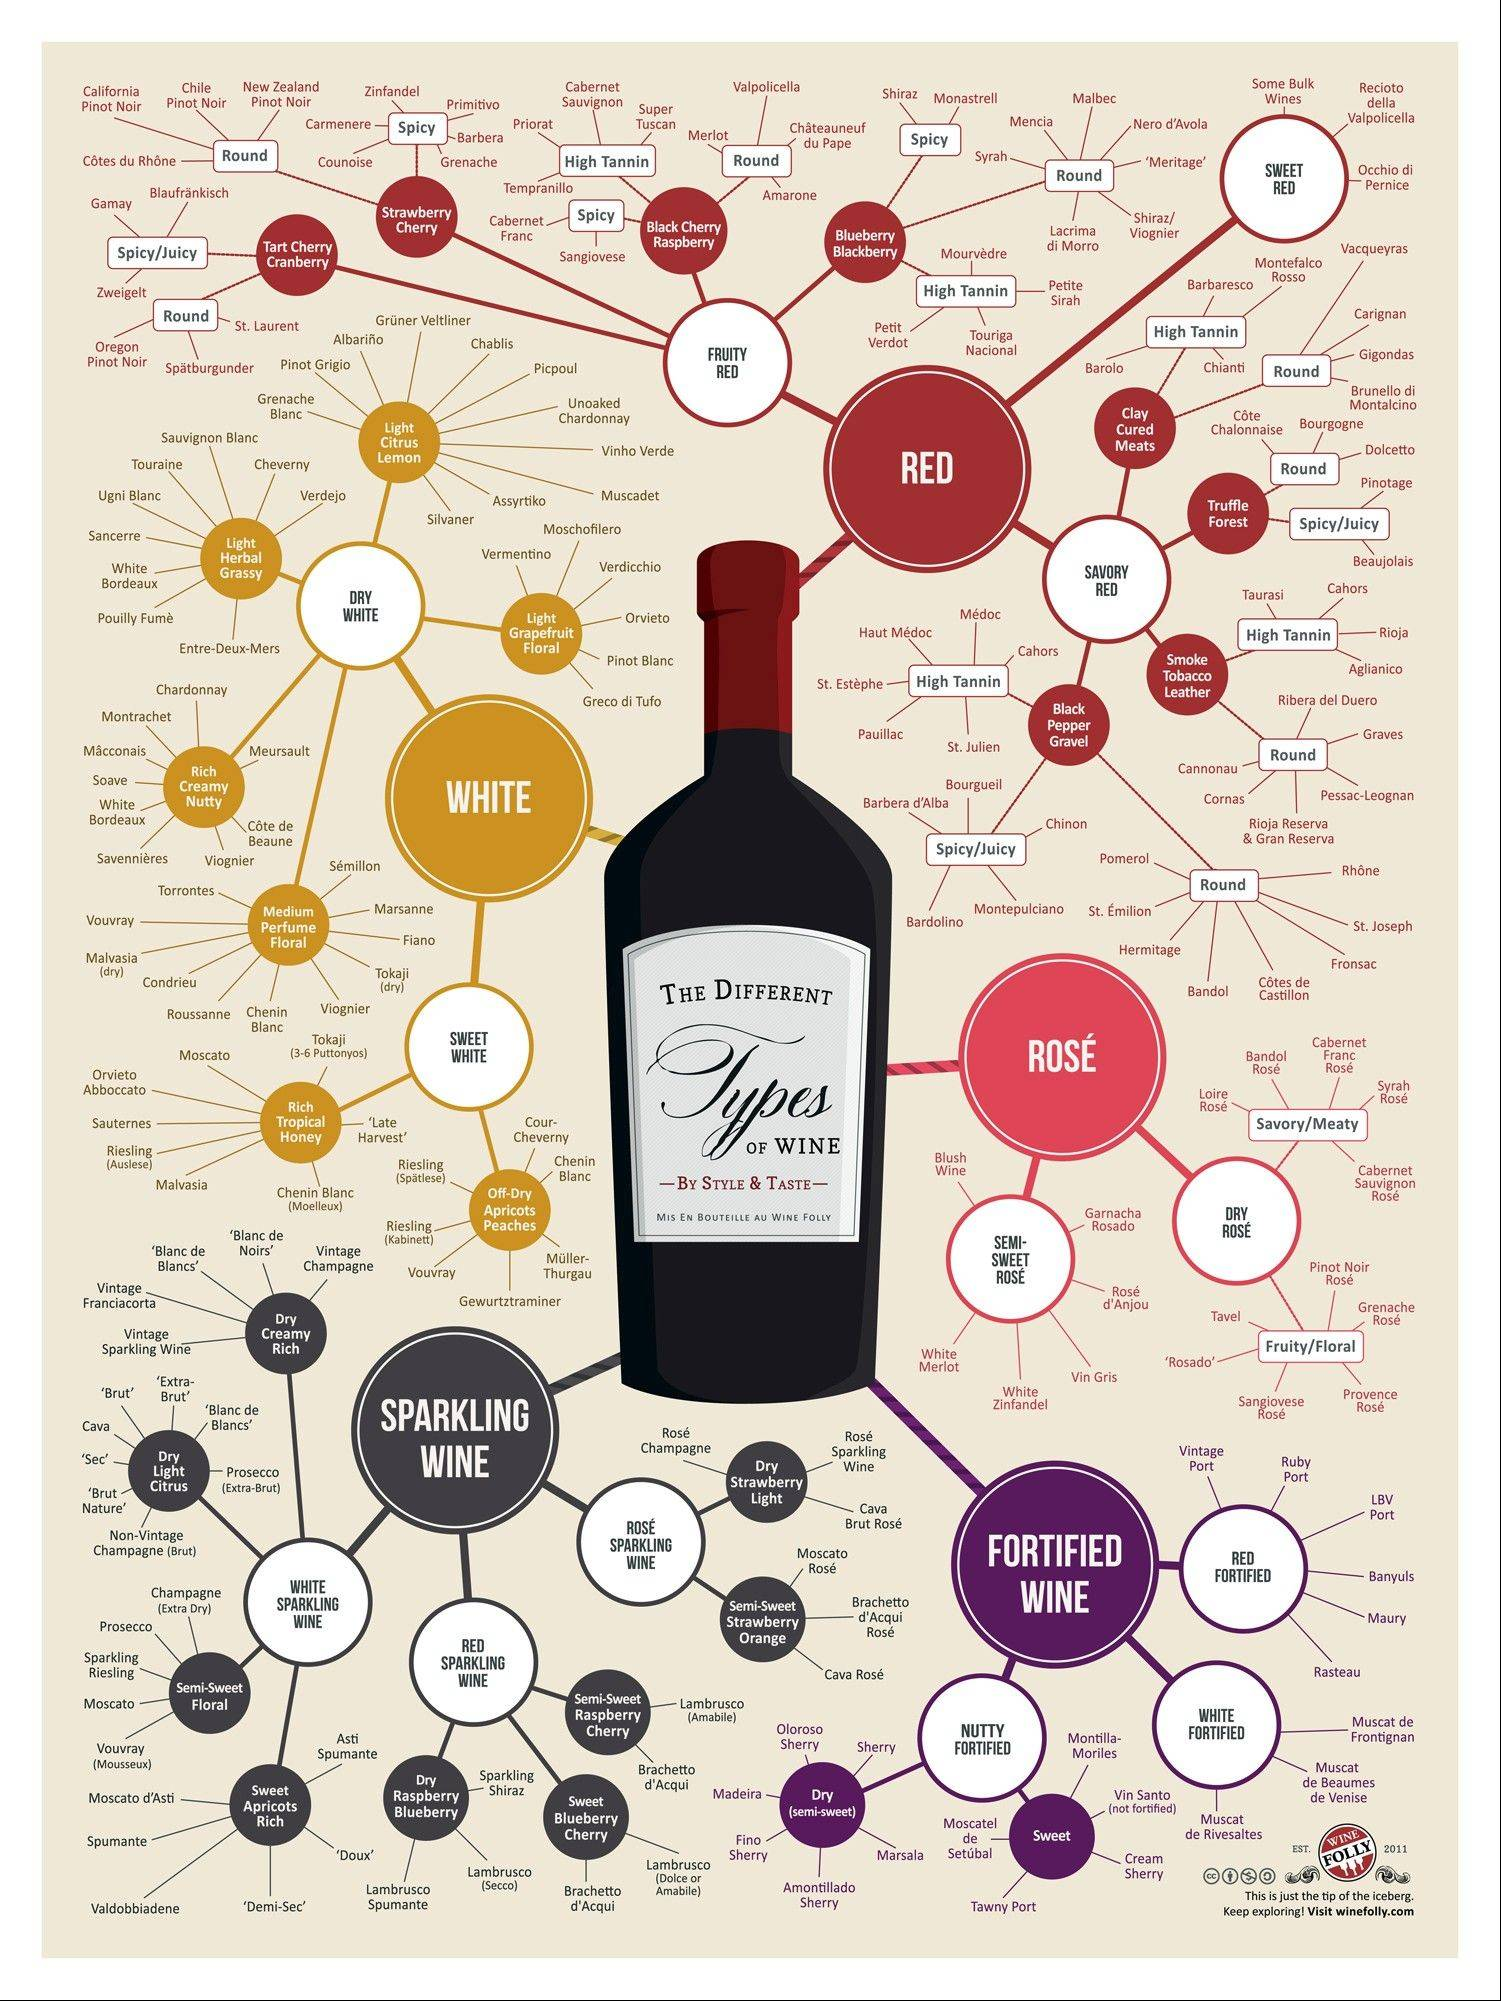 Graphics designer/sommelier Madeline Puckette created this infographic to help people choose the kind of wine to drink.